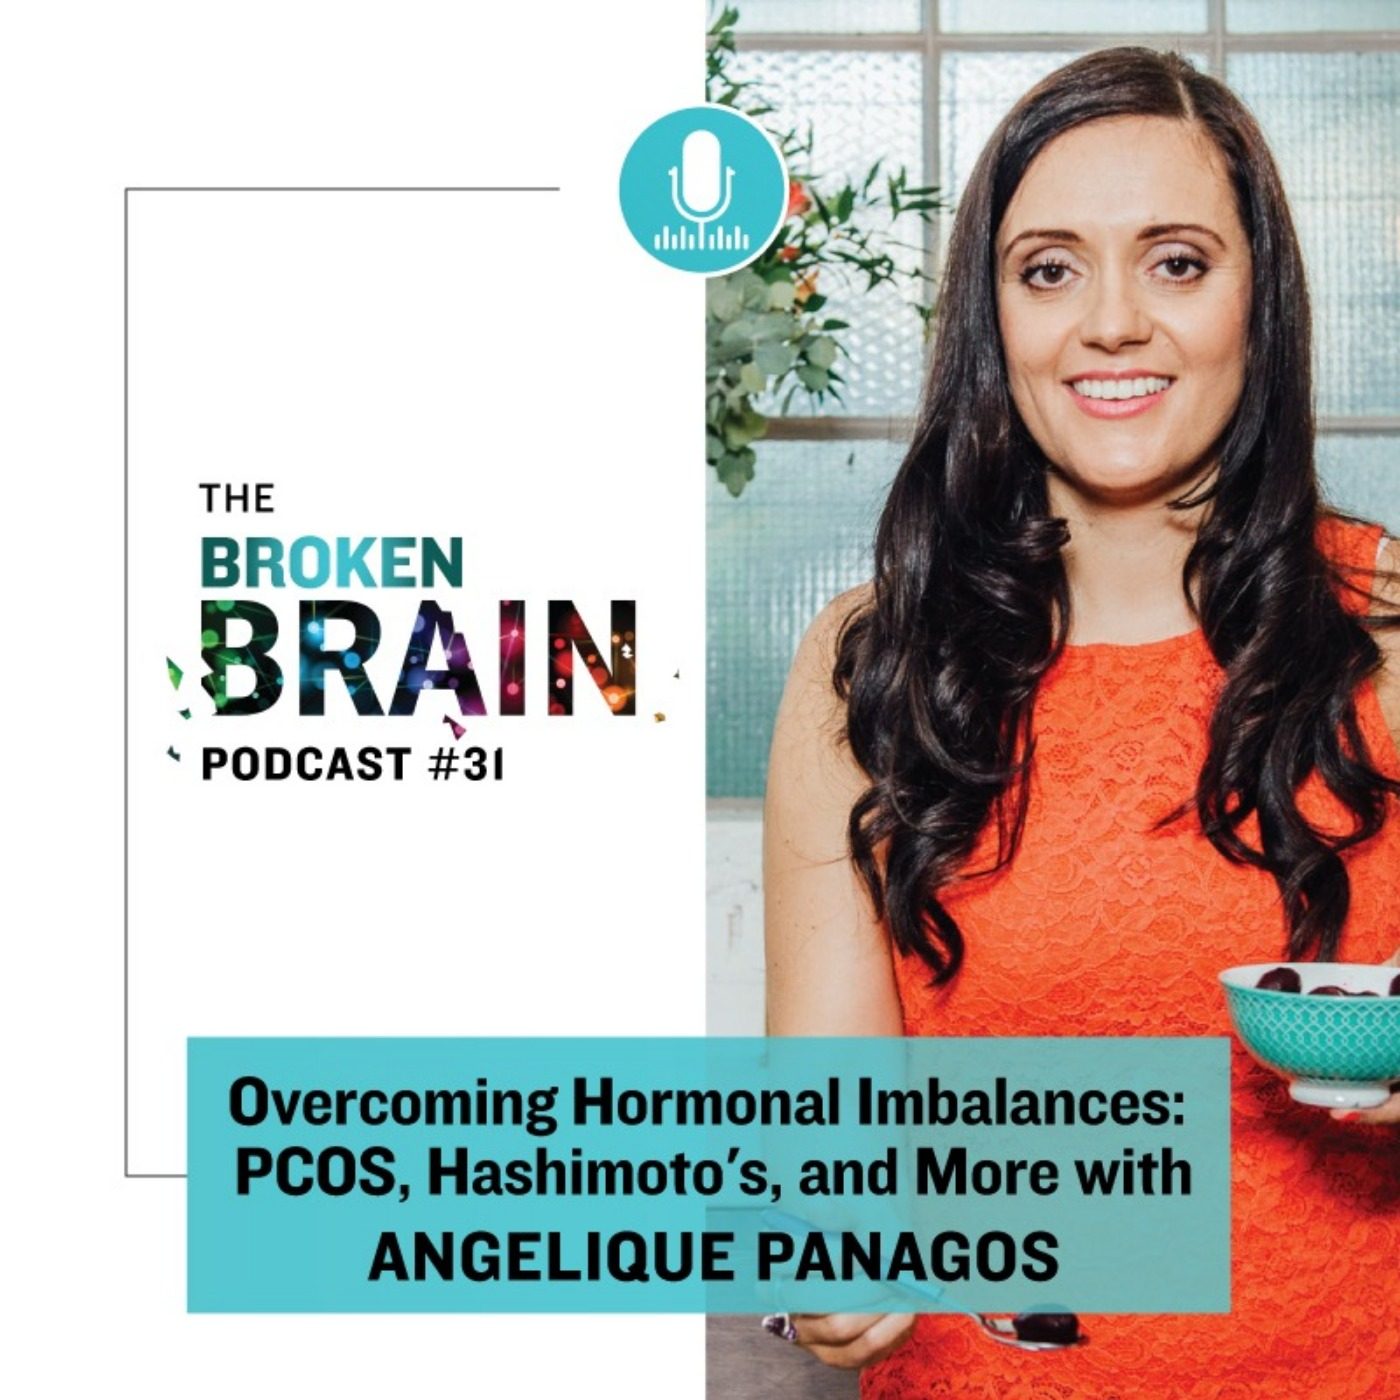 #31: Overcoming Hormonal Imbalances: PCOS, Hashimoto's, and More with Angelique Panagos